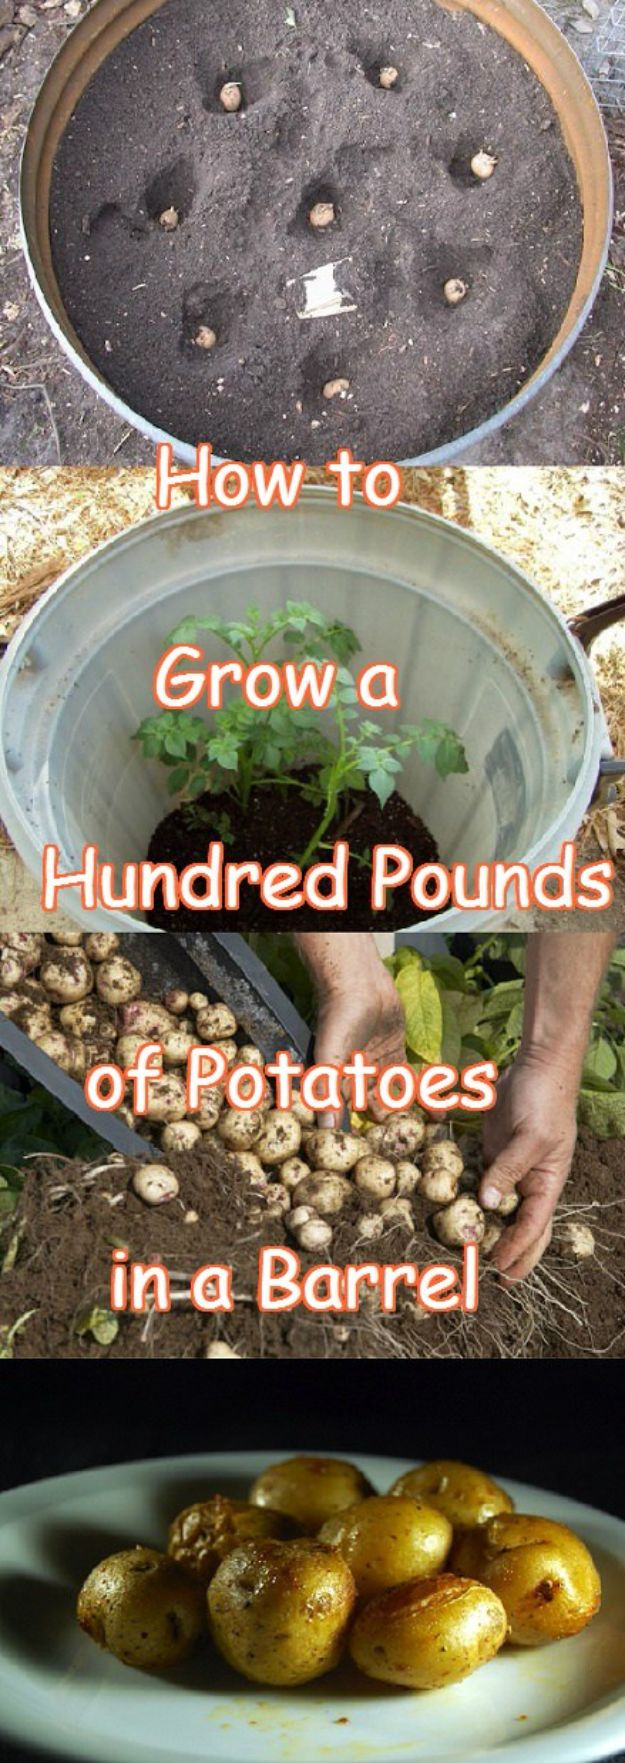 Container Gardening Ideas - Grow Potatoes In A Barrel - Easy Garden Projects for Containers and Growing Plants in Small Spaces - DIY Potting Tips and Planter Boxes for Vegetables, Herbs and Flowers - Simple Ideas for Beginners -Shade, Full Sun, Pation and Yard Landscape Idea tutorials http://diyjoy.com/container-gardening-ideas